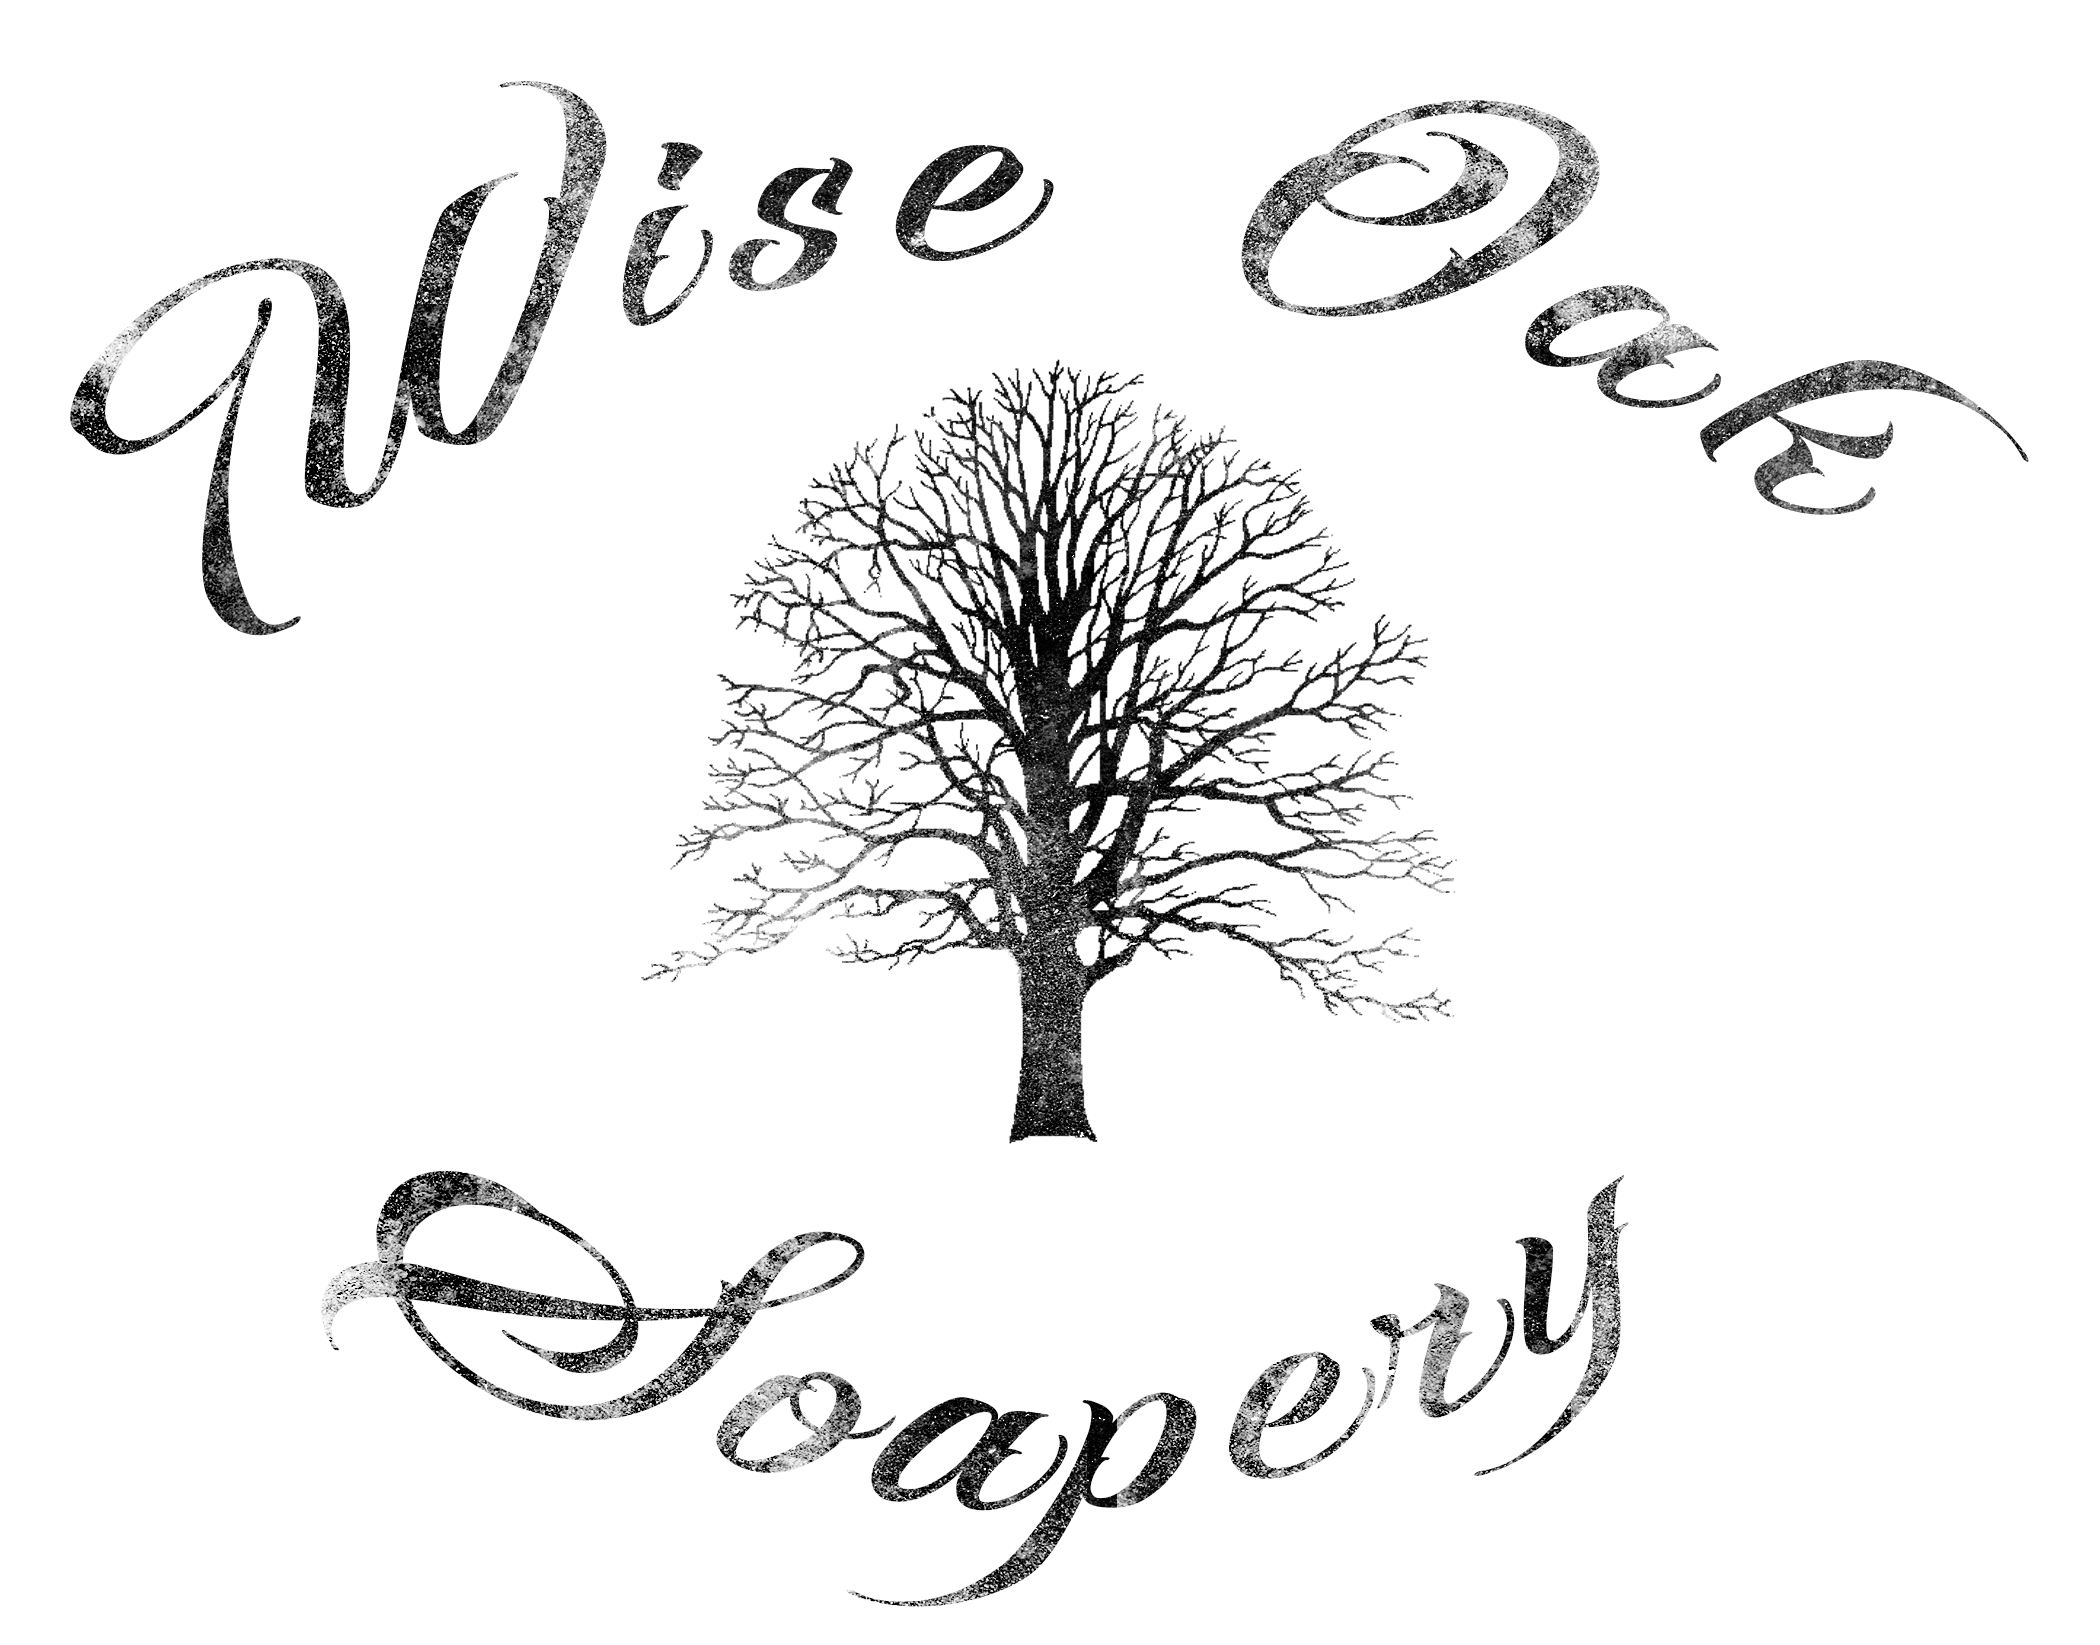 Wise Oak Soapery Handmade All Natural Bath & Body Soaps and Skin Care